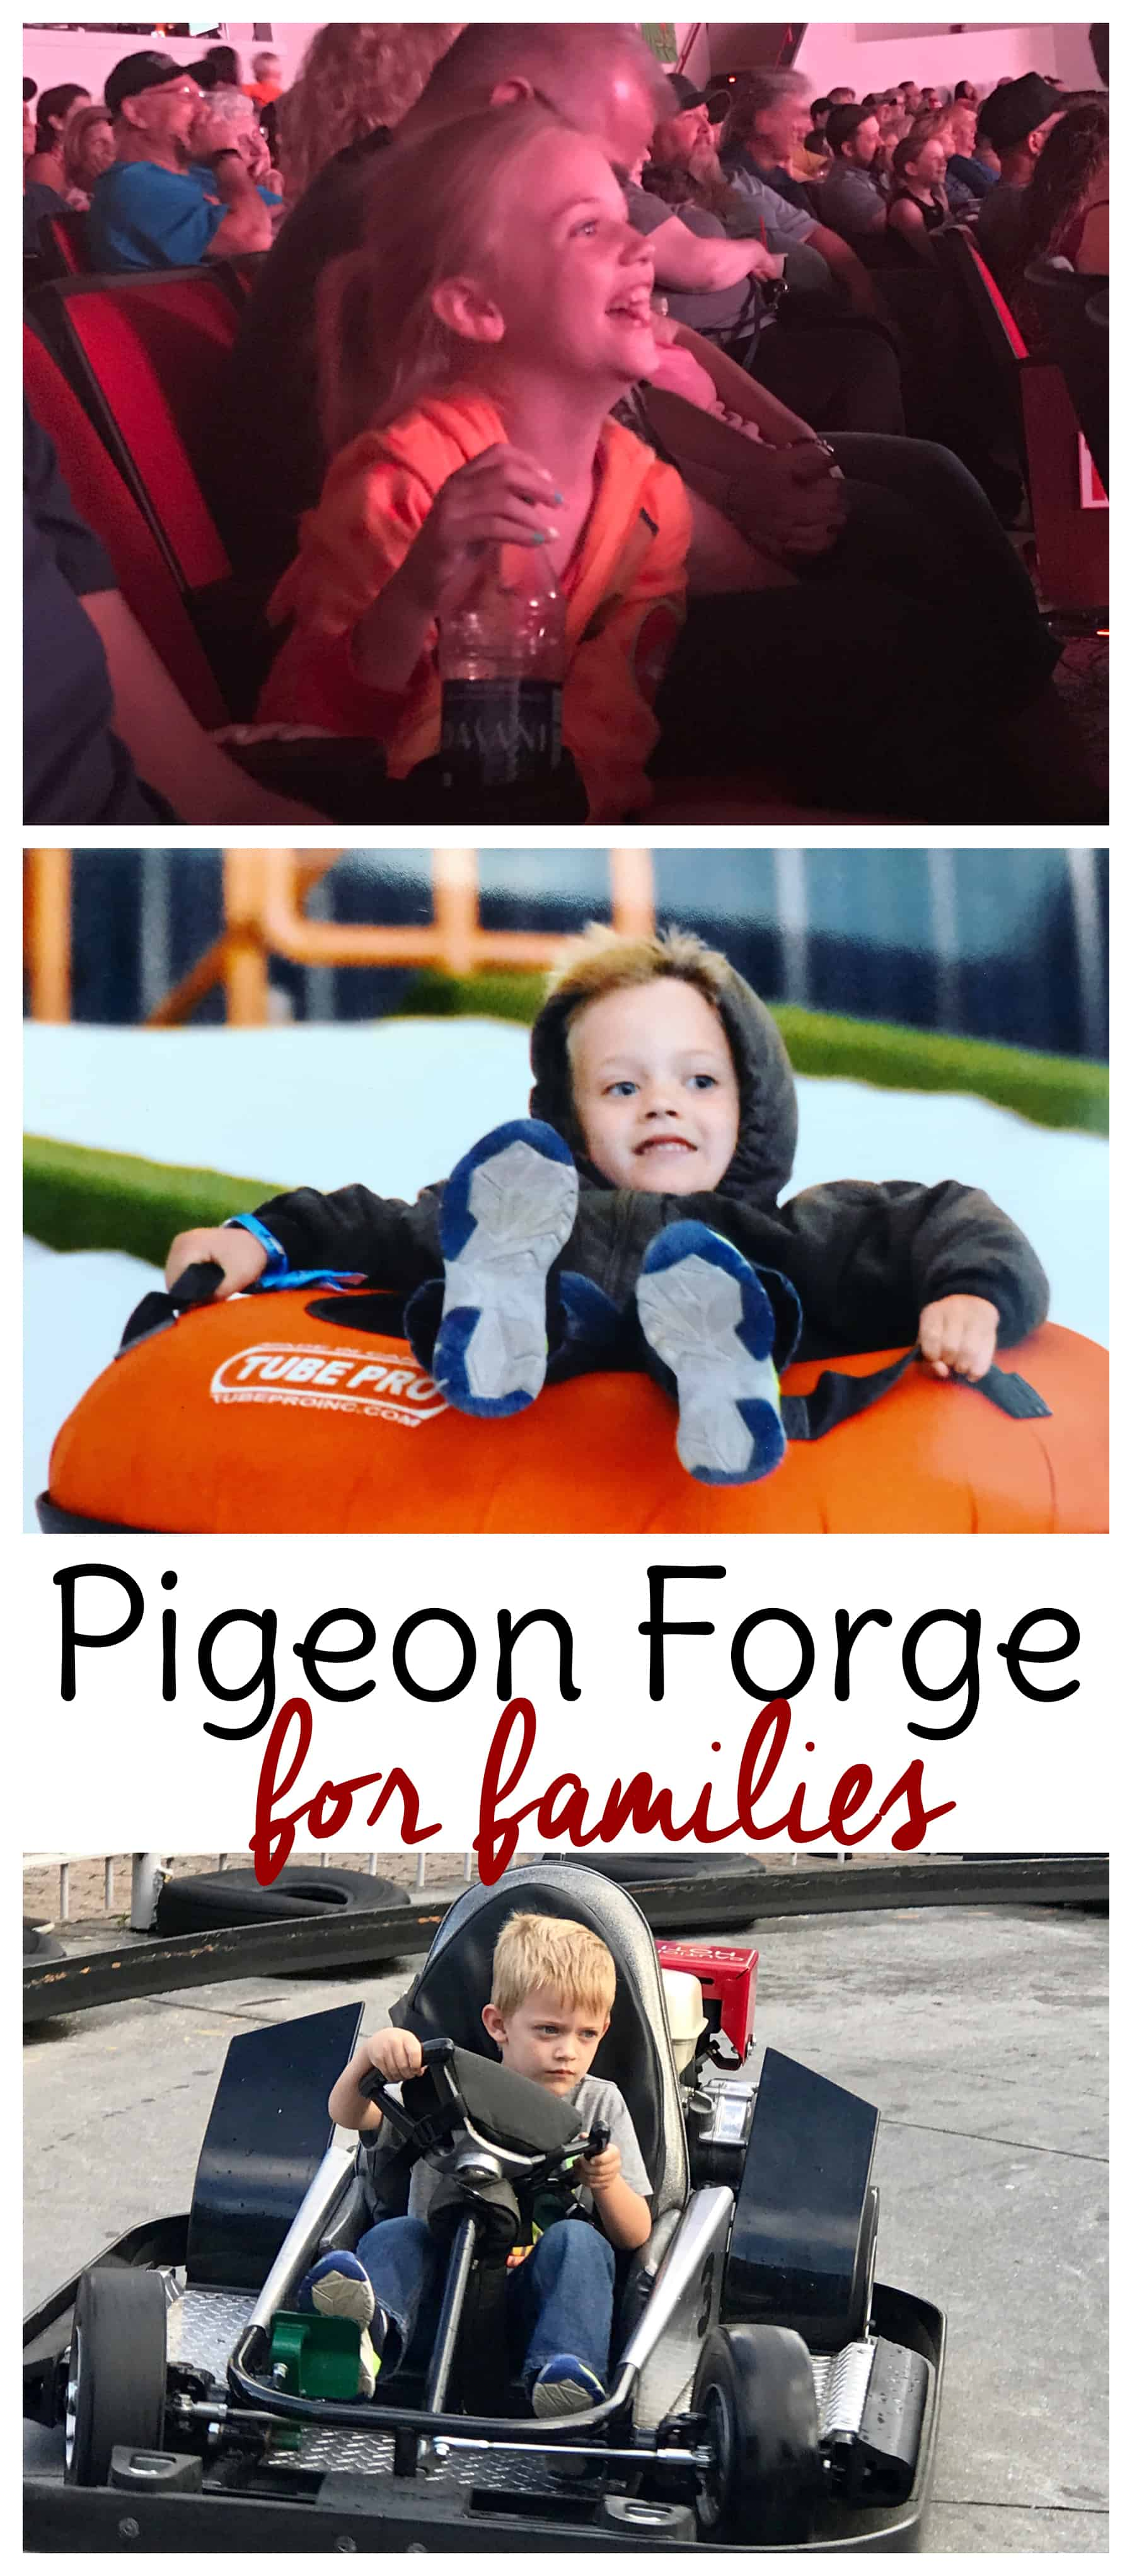 Pigeon Forge family fun can be found nearly everywhere you turn at this Tennessee destination. How do you choose what to do? Don't miss these Pigeon Forge family attractions on your next Smoky Mountain vacation. 10+ Pigeon Forge attractions for kids!